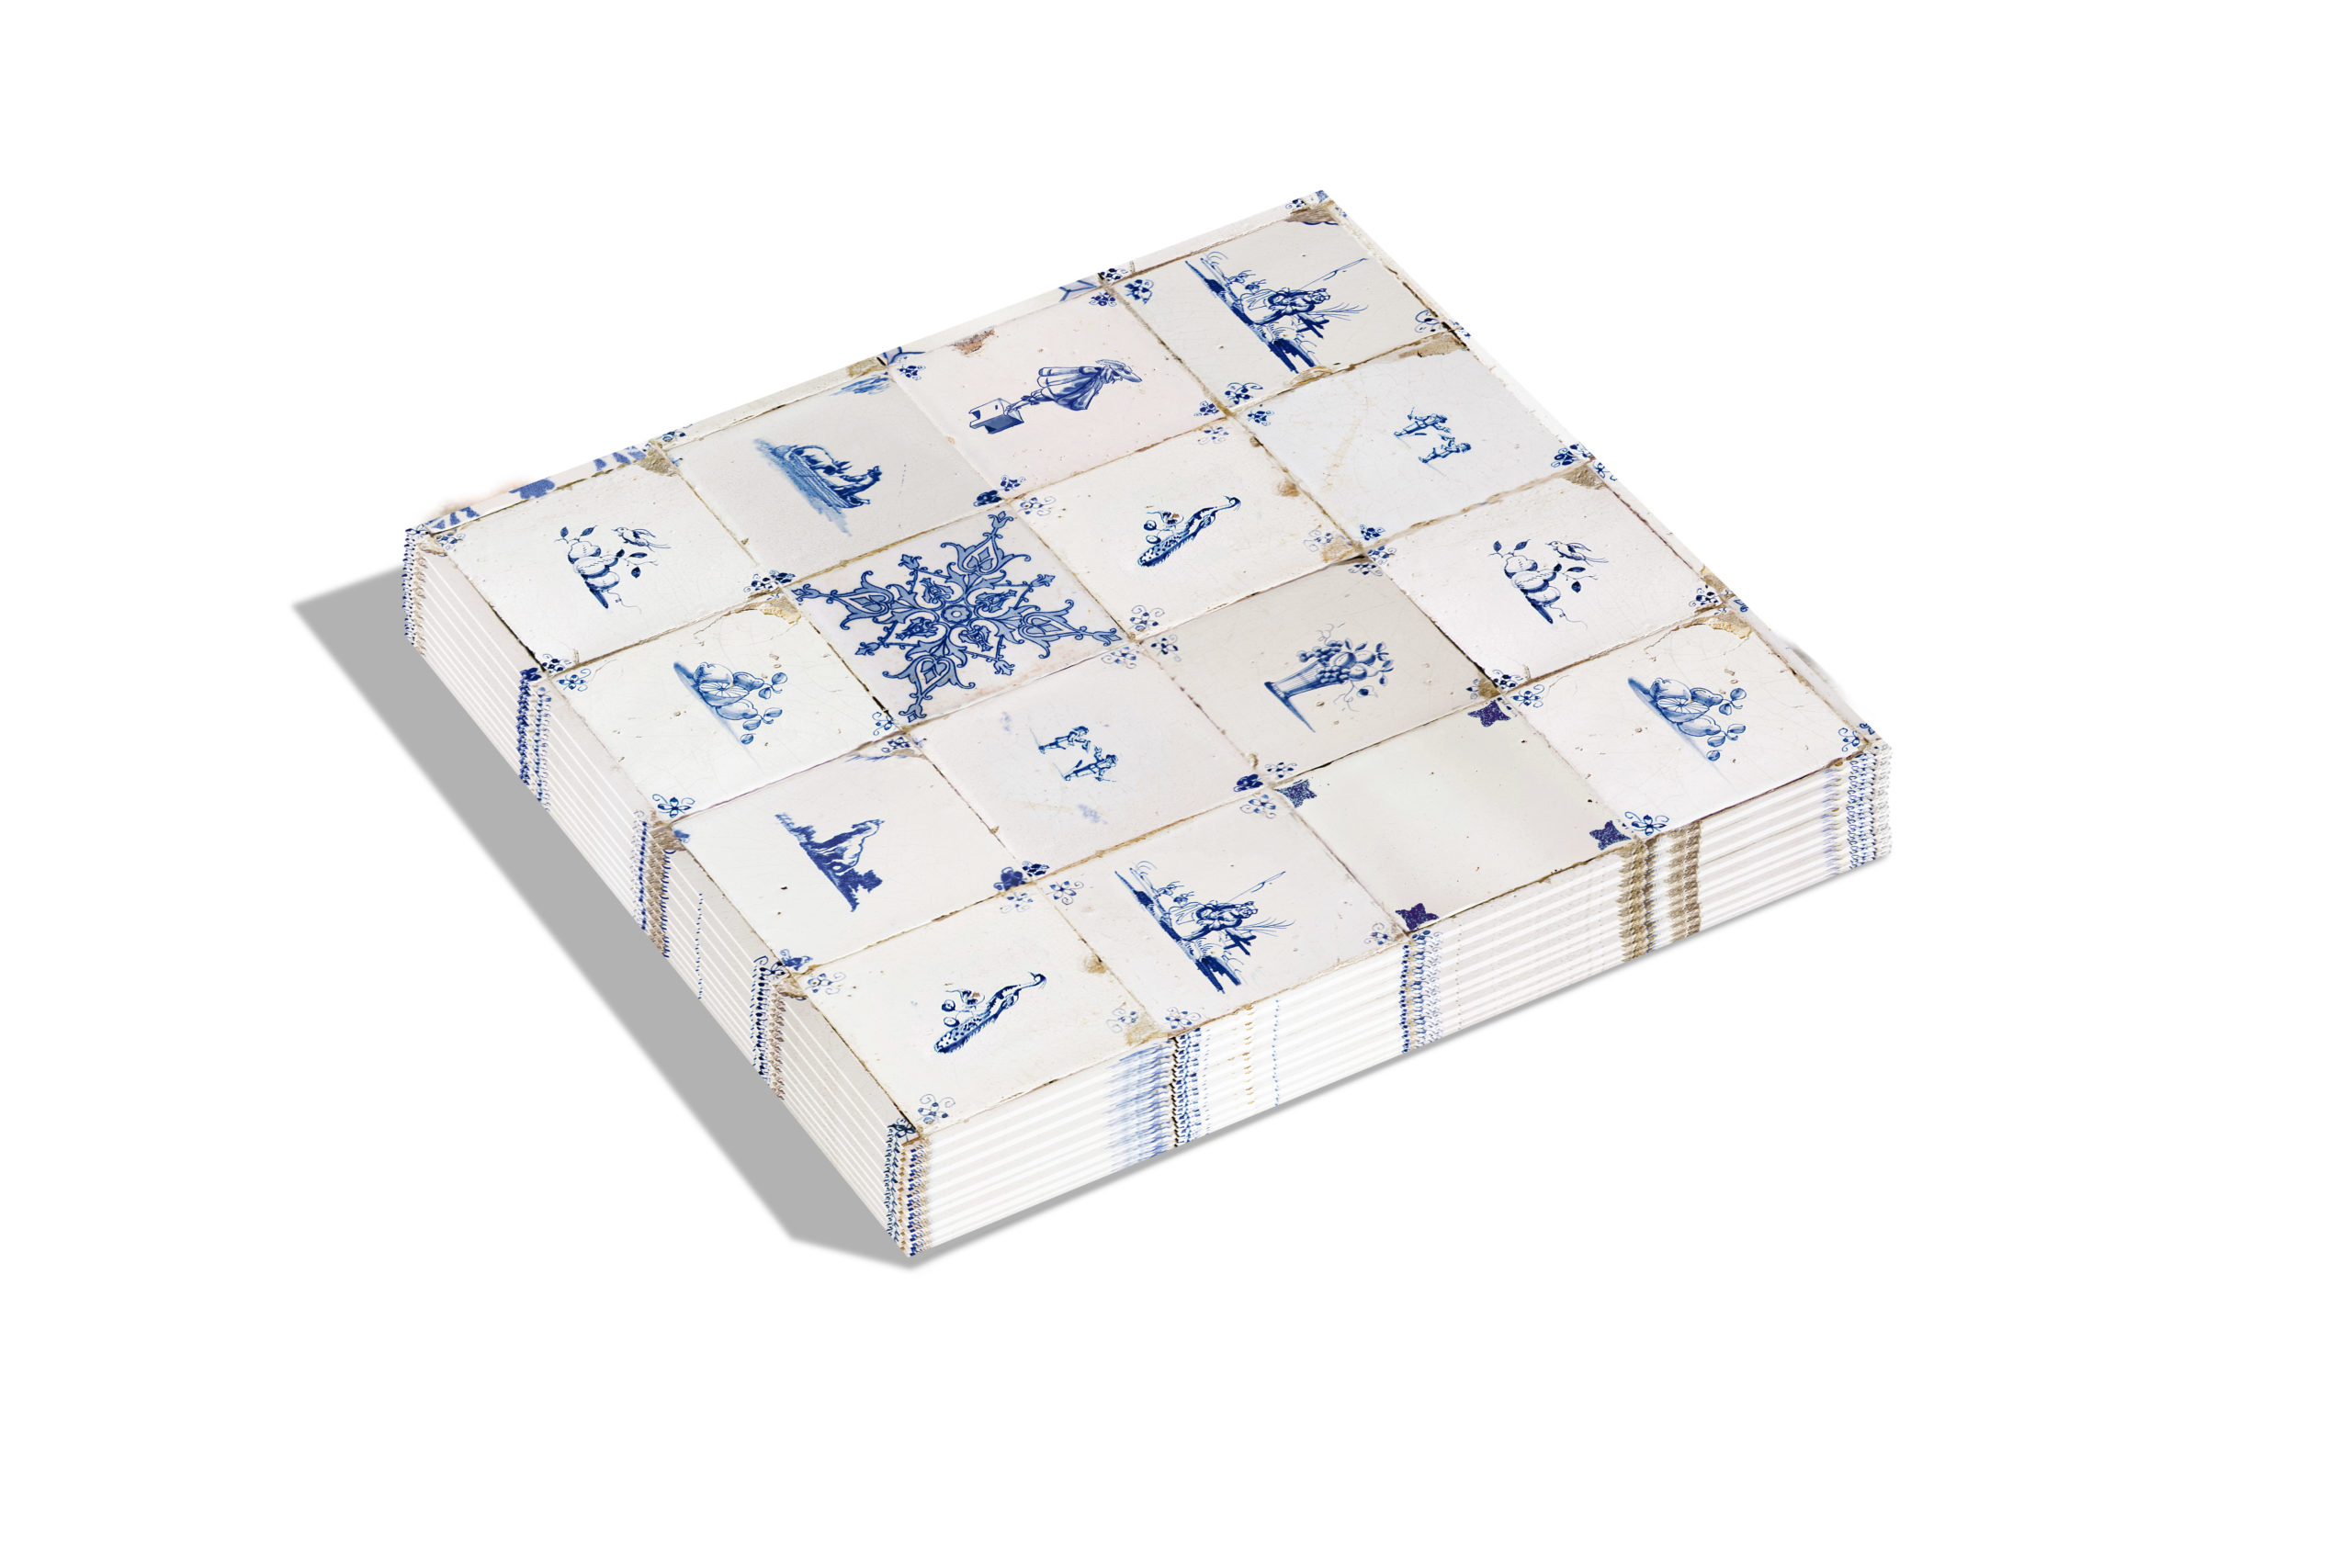 Dutch Tiles Kerst servetten